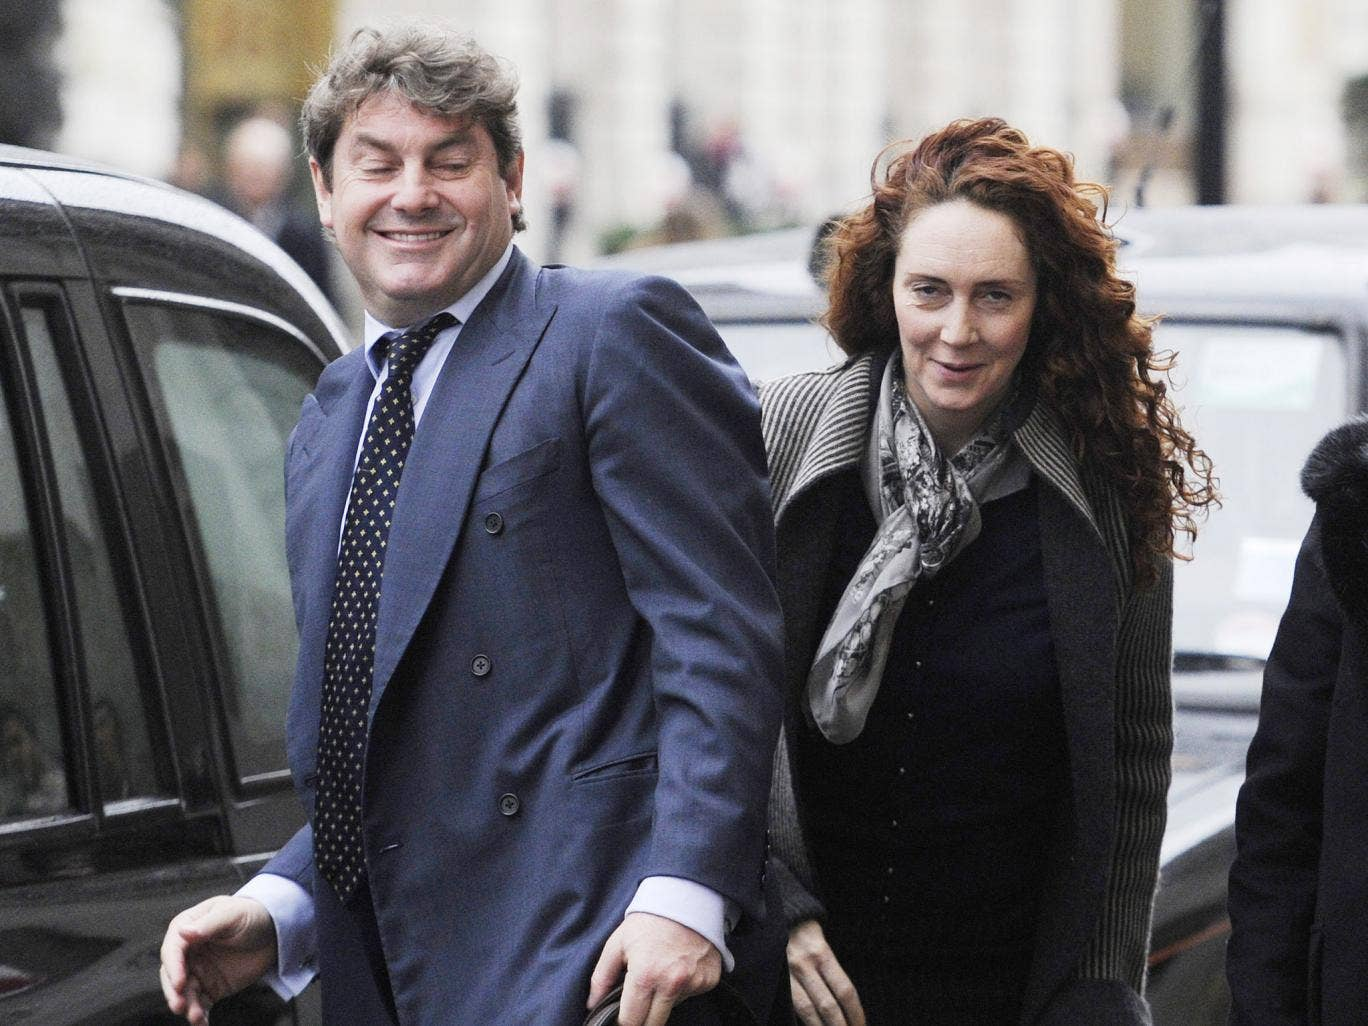 An email exchange in April 2011 between Rebekah Brooks and her husband, Charles Brooks, referred to her losing an iPad